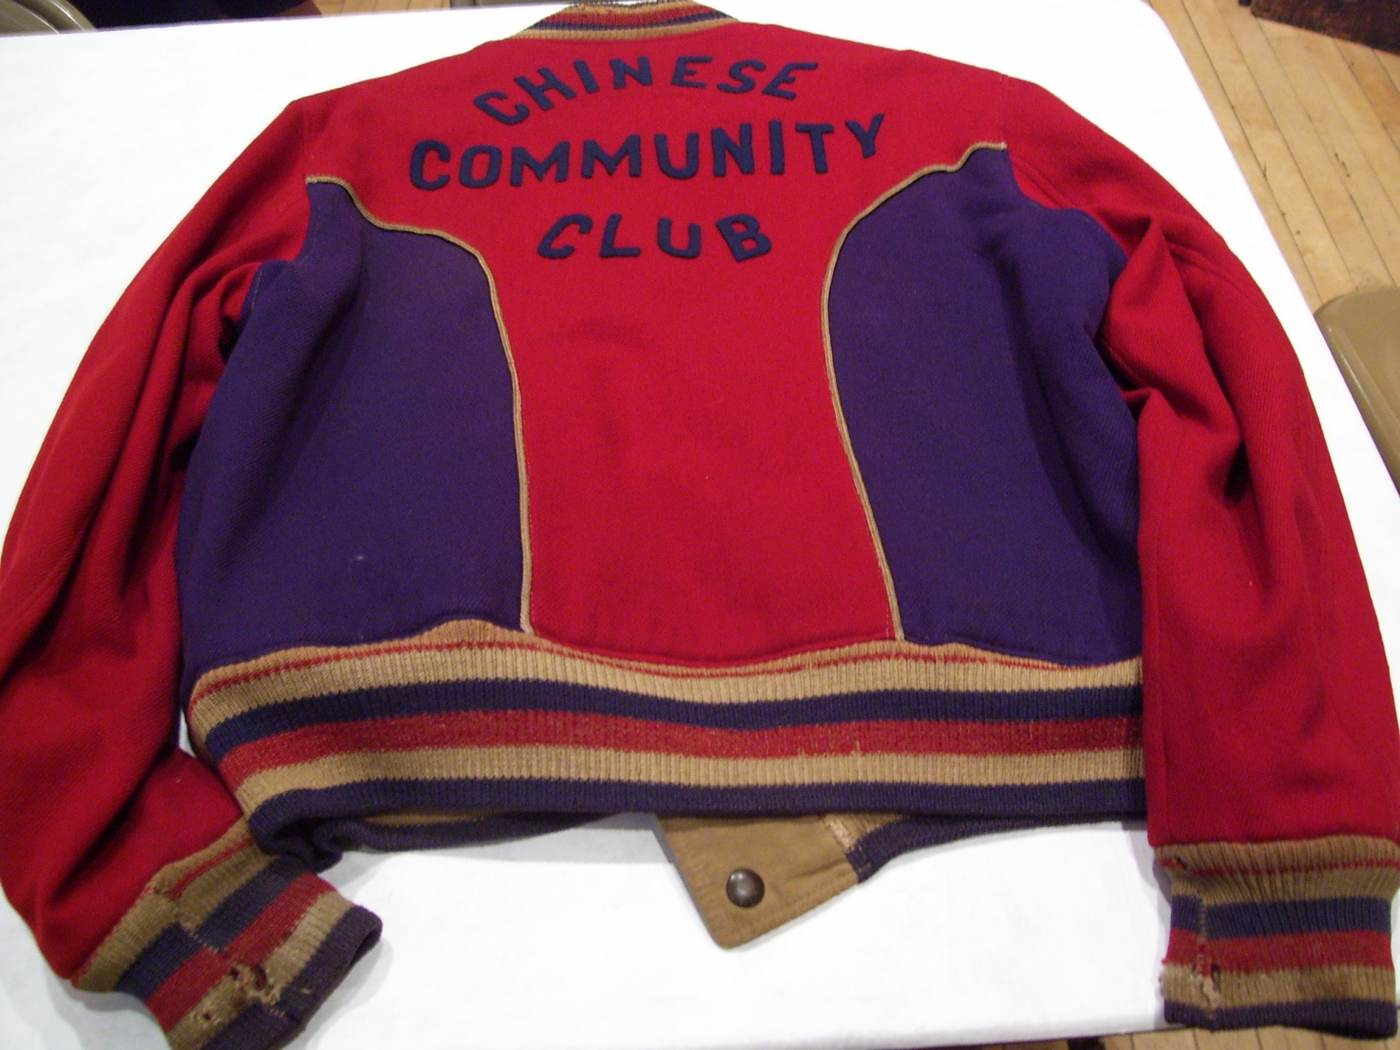 02 October 2019 Posted.  CCC sponsored basketball team jacket, ca. 1960, Courtesy of Tim Tsang, Museum of Chinese in America (MOCA) Collection. 由华人社区俱乐部支持的篮球队夹克衫,大约1960年,Tim Tsang捐赠,美国华人博物馆(MOCA)馆藏